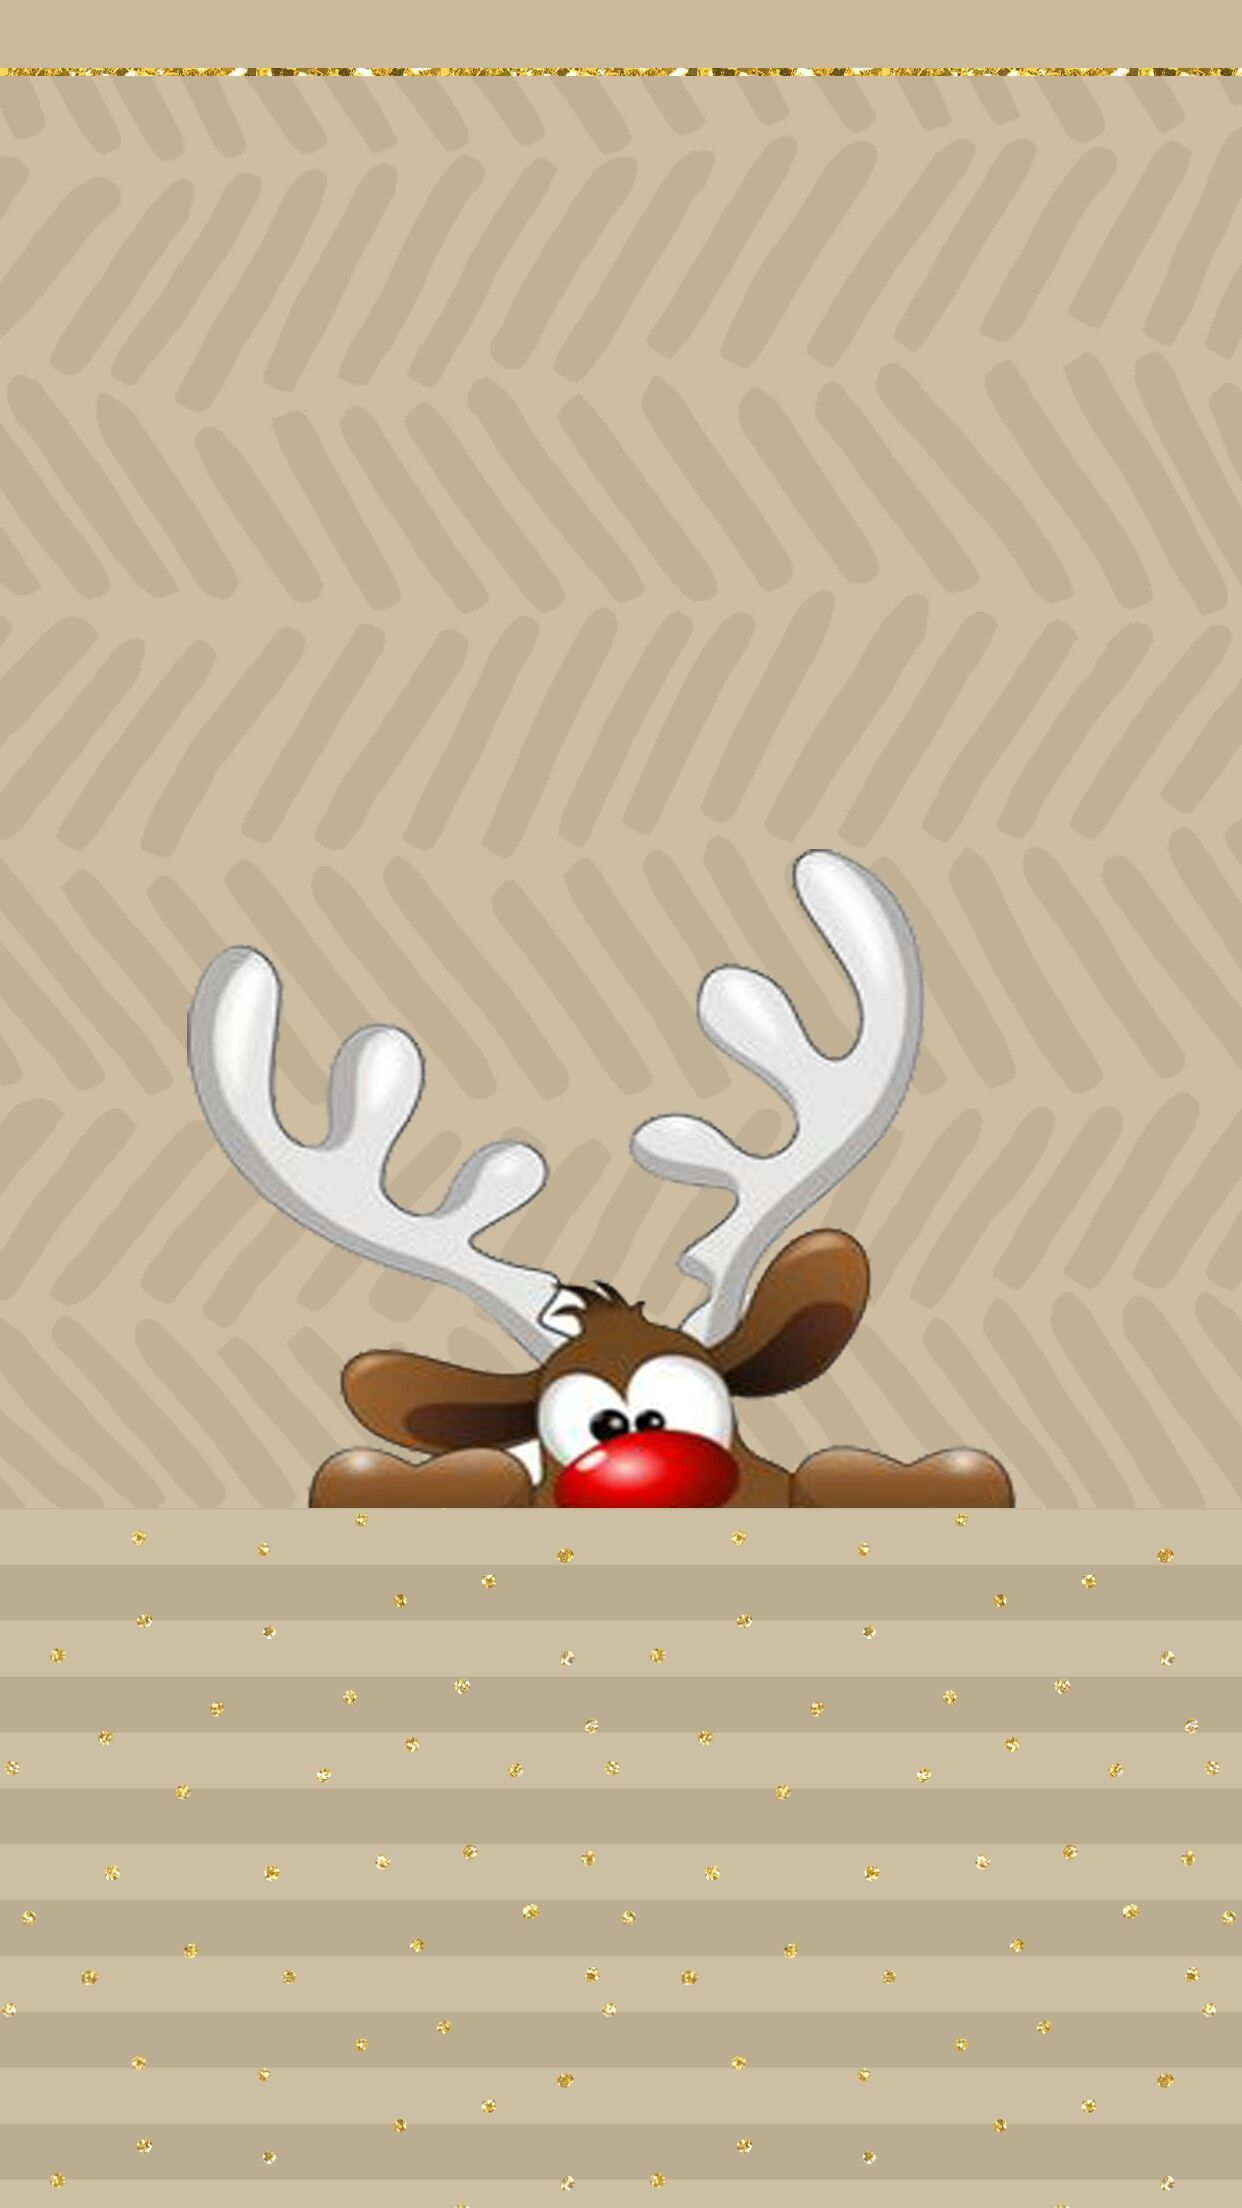 iPhone Wall: Christmas tjn | iPhone Walls: Christmas & HNY ...